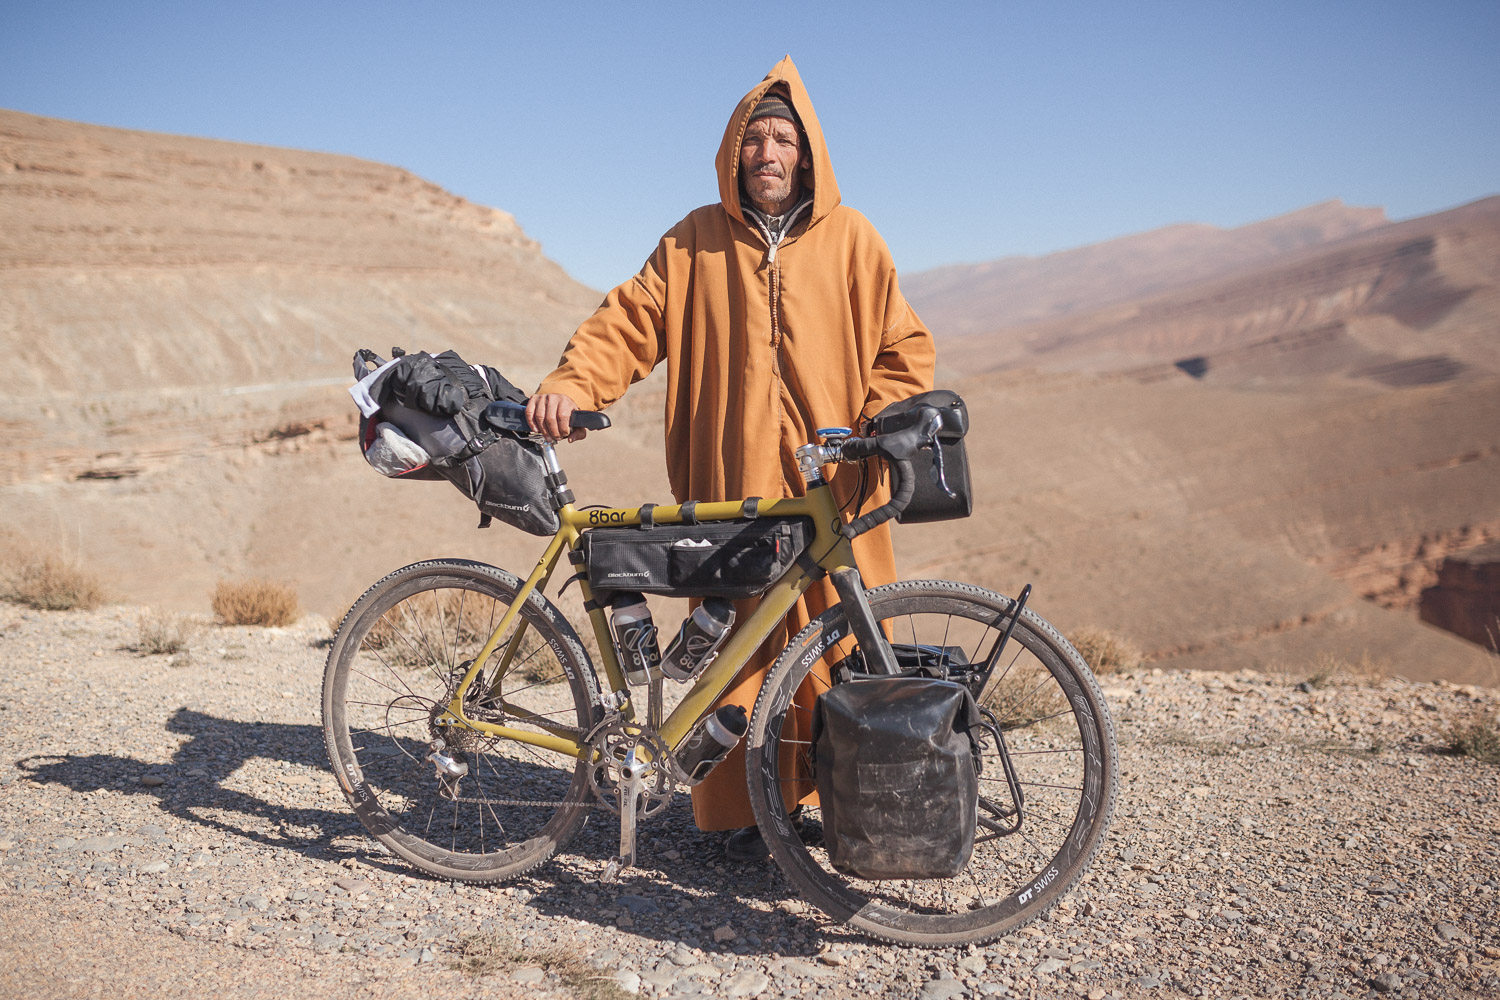 8bar bikes adventures morocco gravel 20151213 0133 bearbeitet 2 - 8bar Adventures - Morocco - High Atlas - Part 1/2